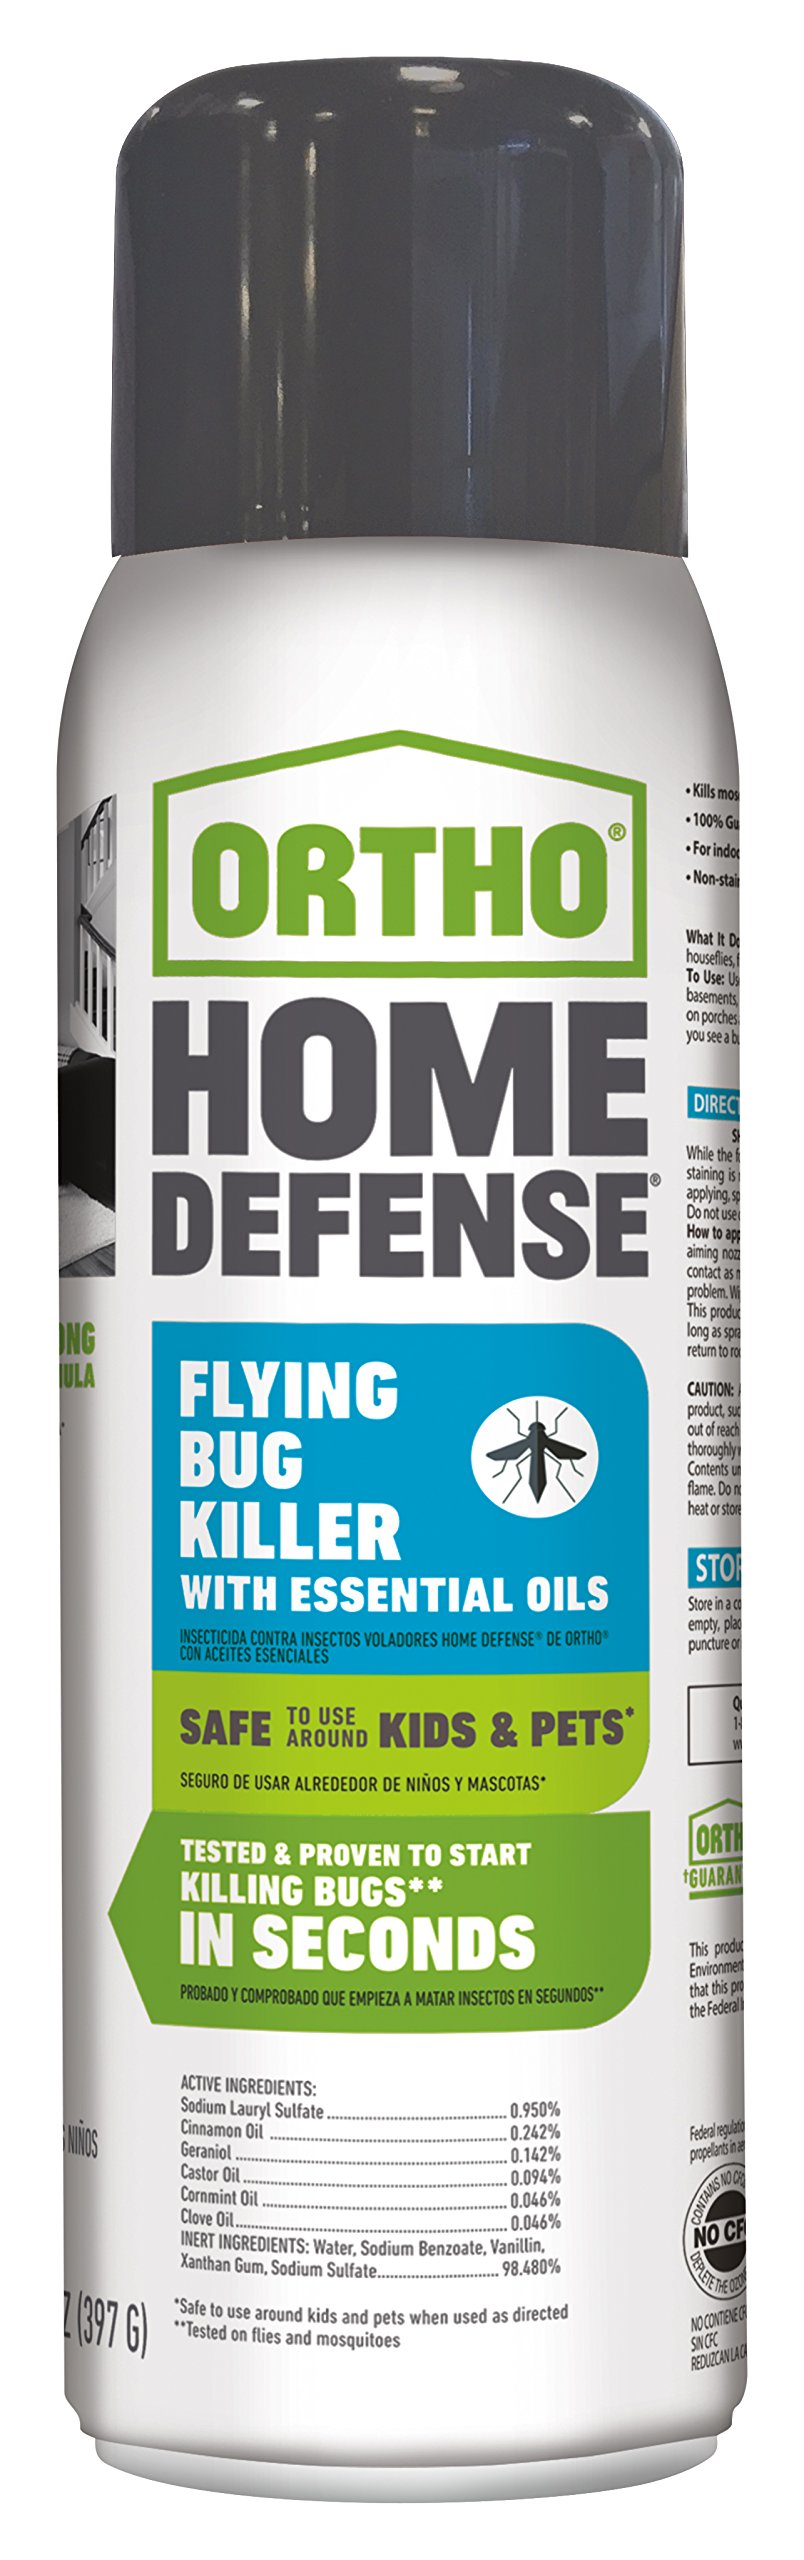 Ortho Home Defense Flying Bug Killer with Essential Oils Aerosol 14 oz